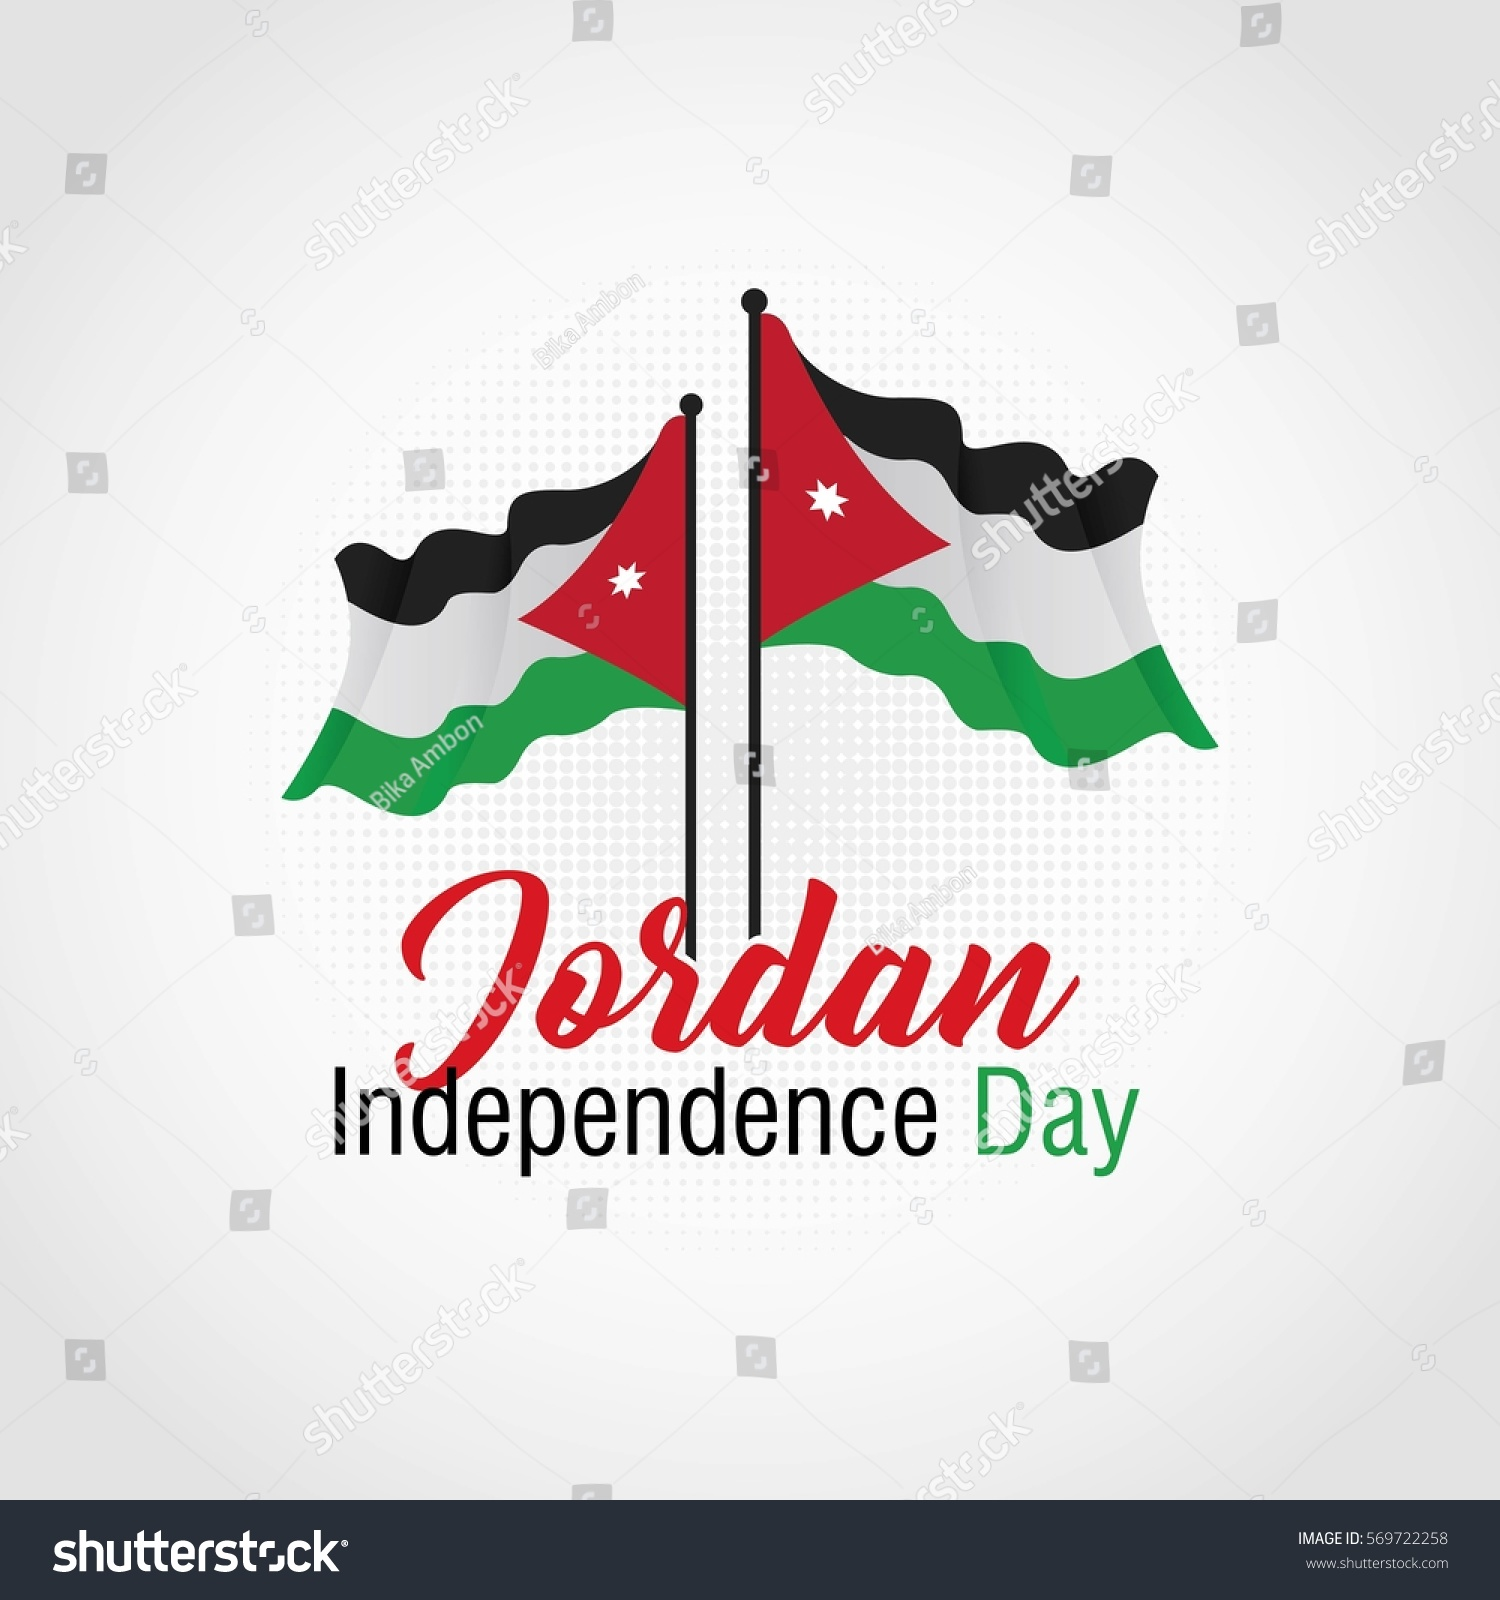 Jordan independence day vector illustration suitable stock vector jordan independence day vector illustration suitable for greeting card poster and banner biocorpaavc Gallery